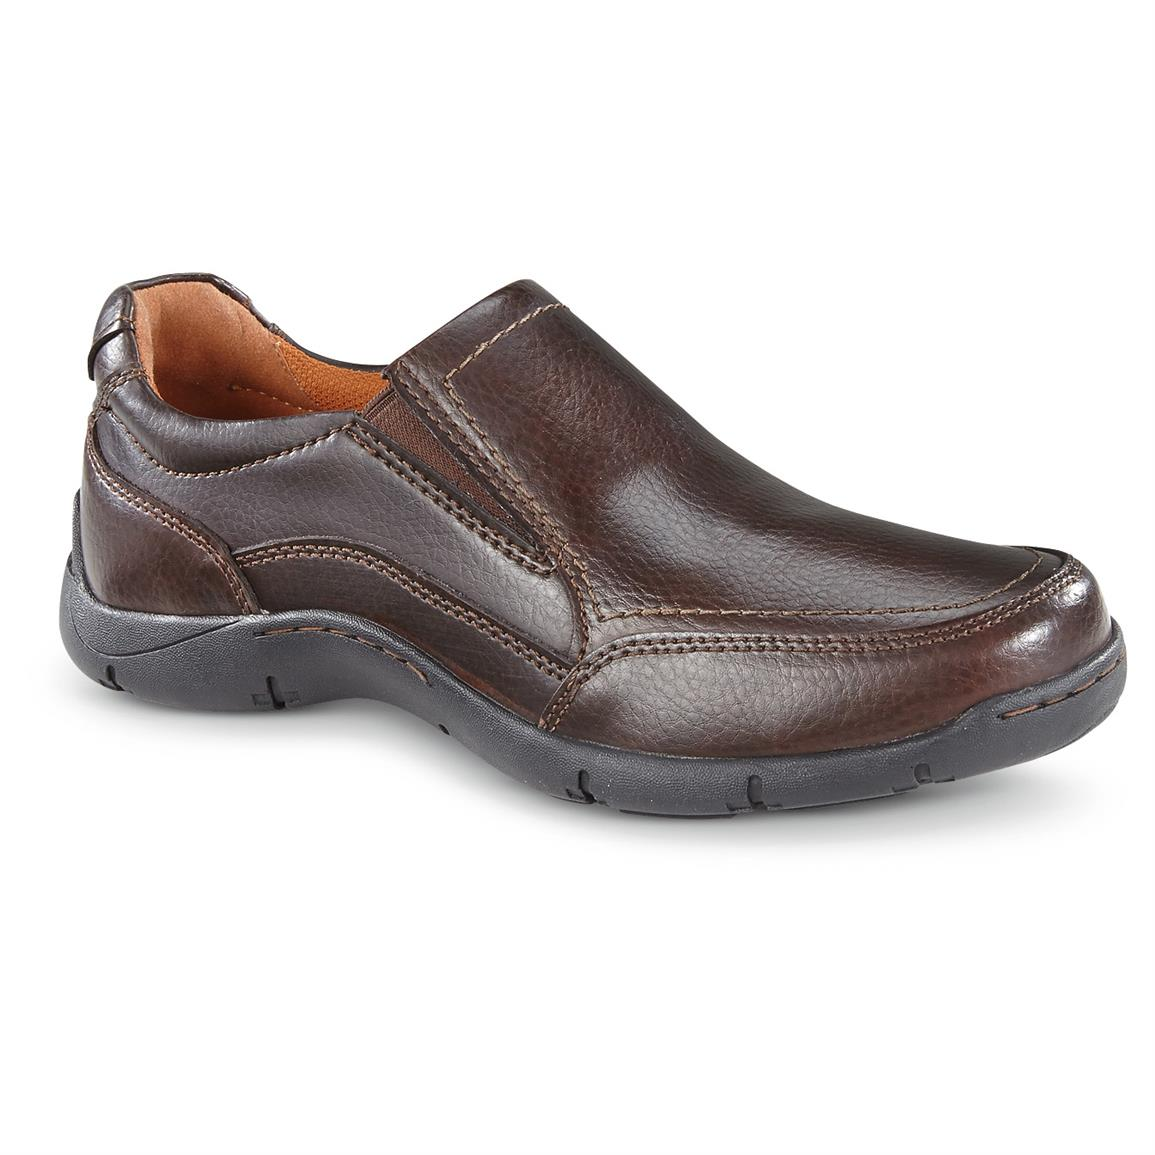 Streetcars Men's Daytona Slip-on Shoes, Brown